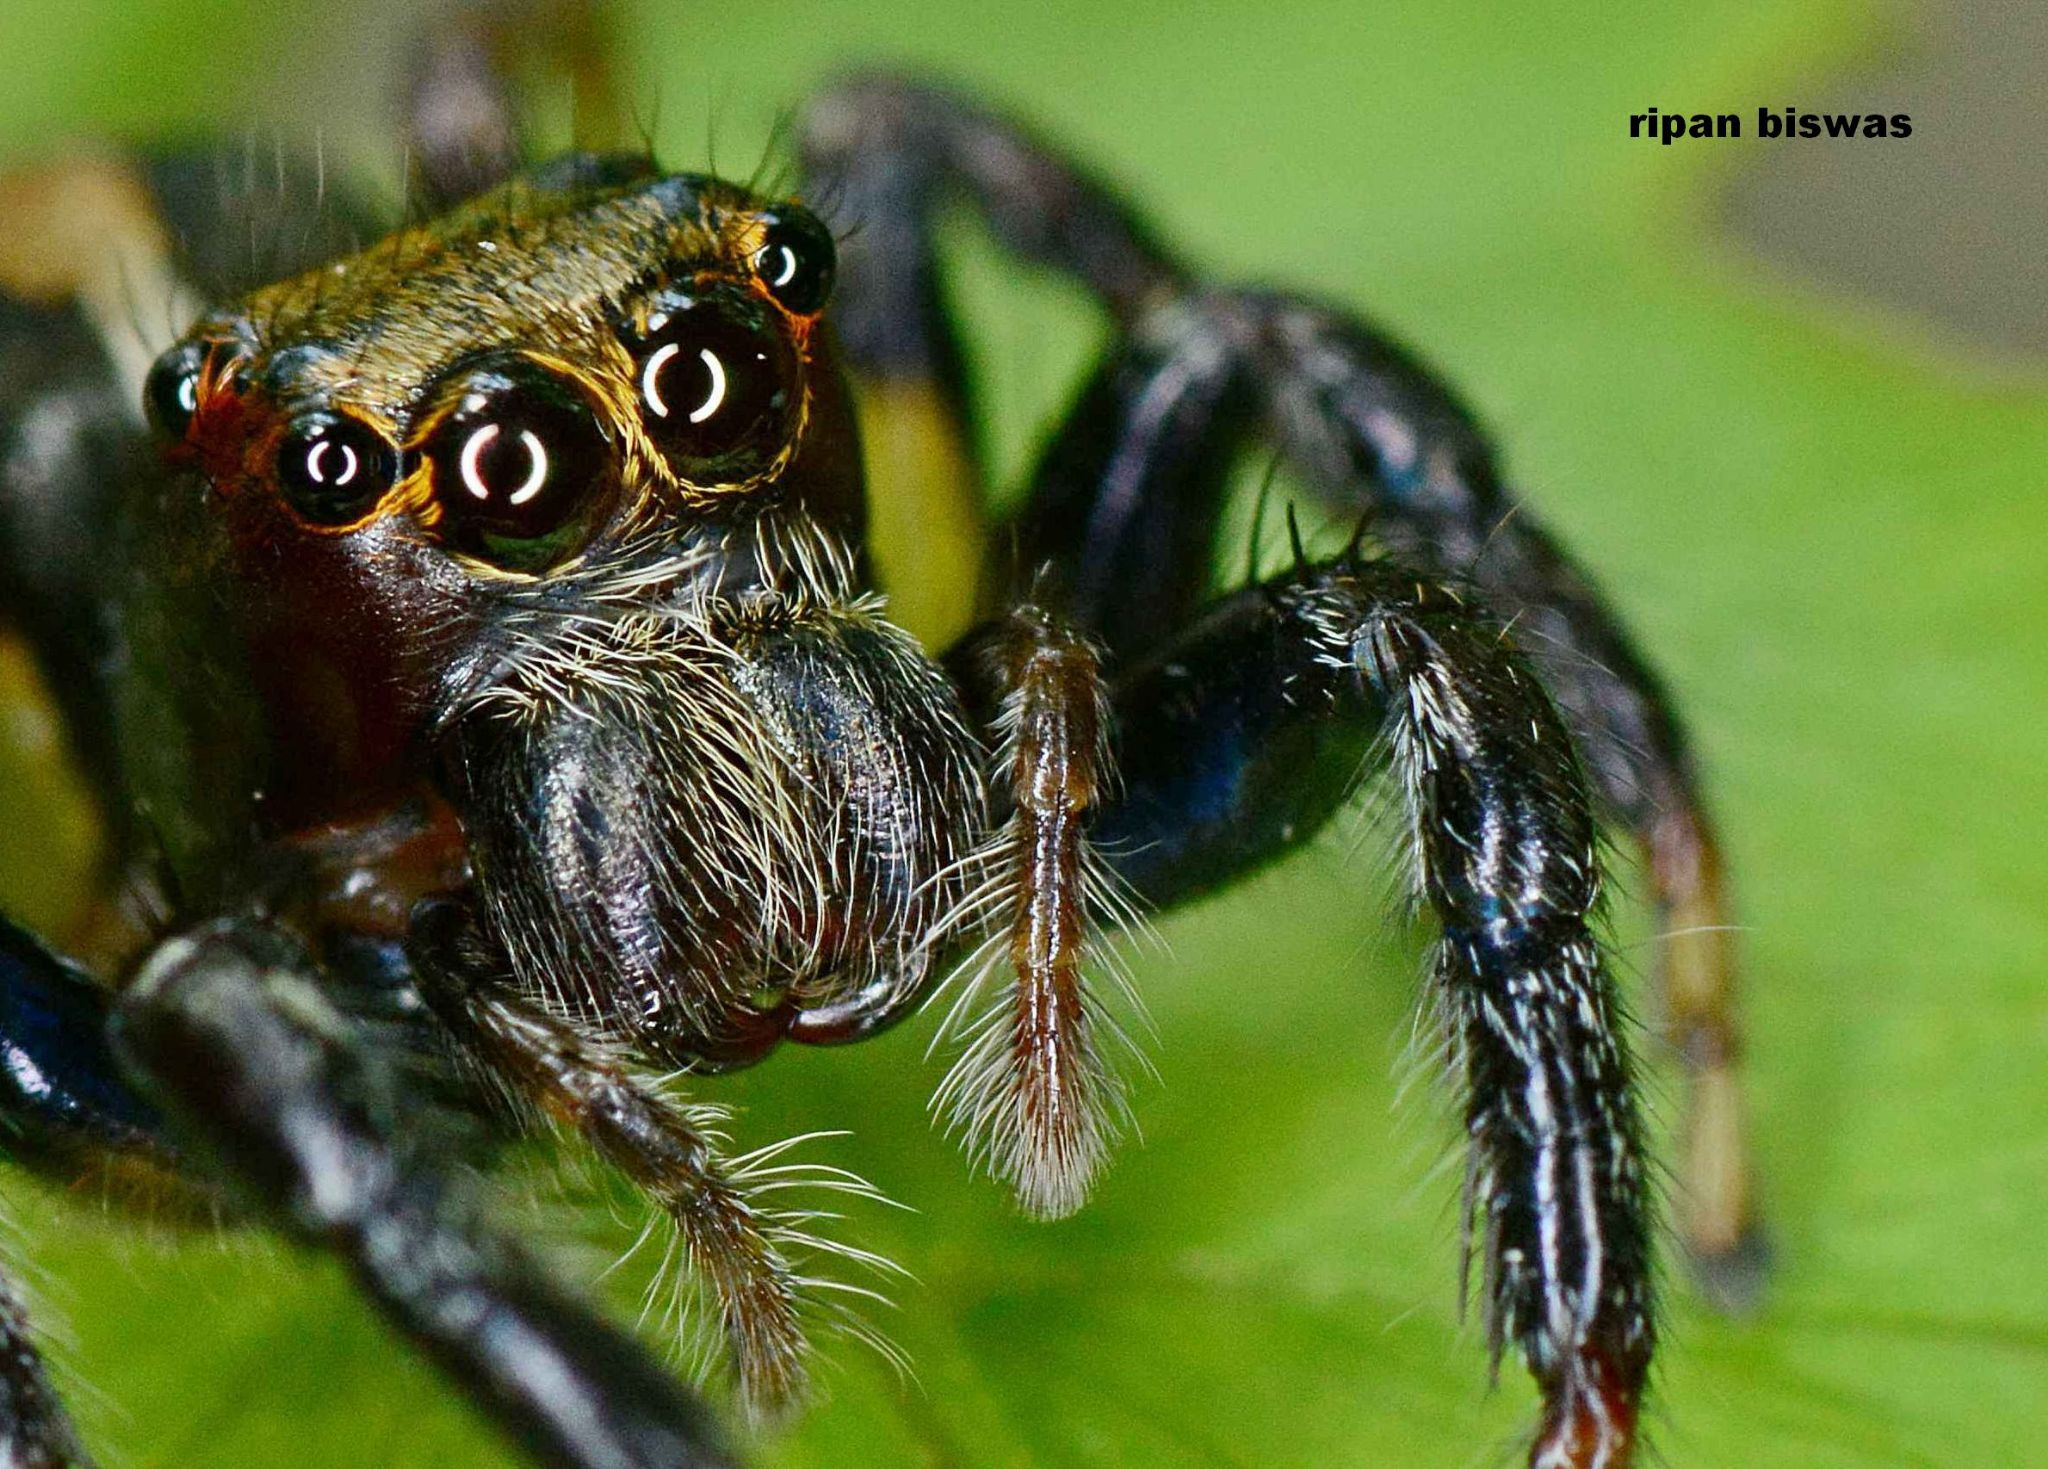 spider by ripanbiswas